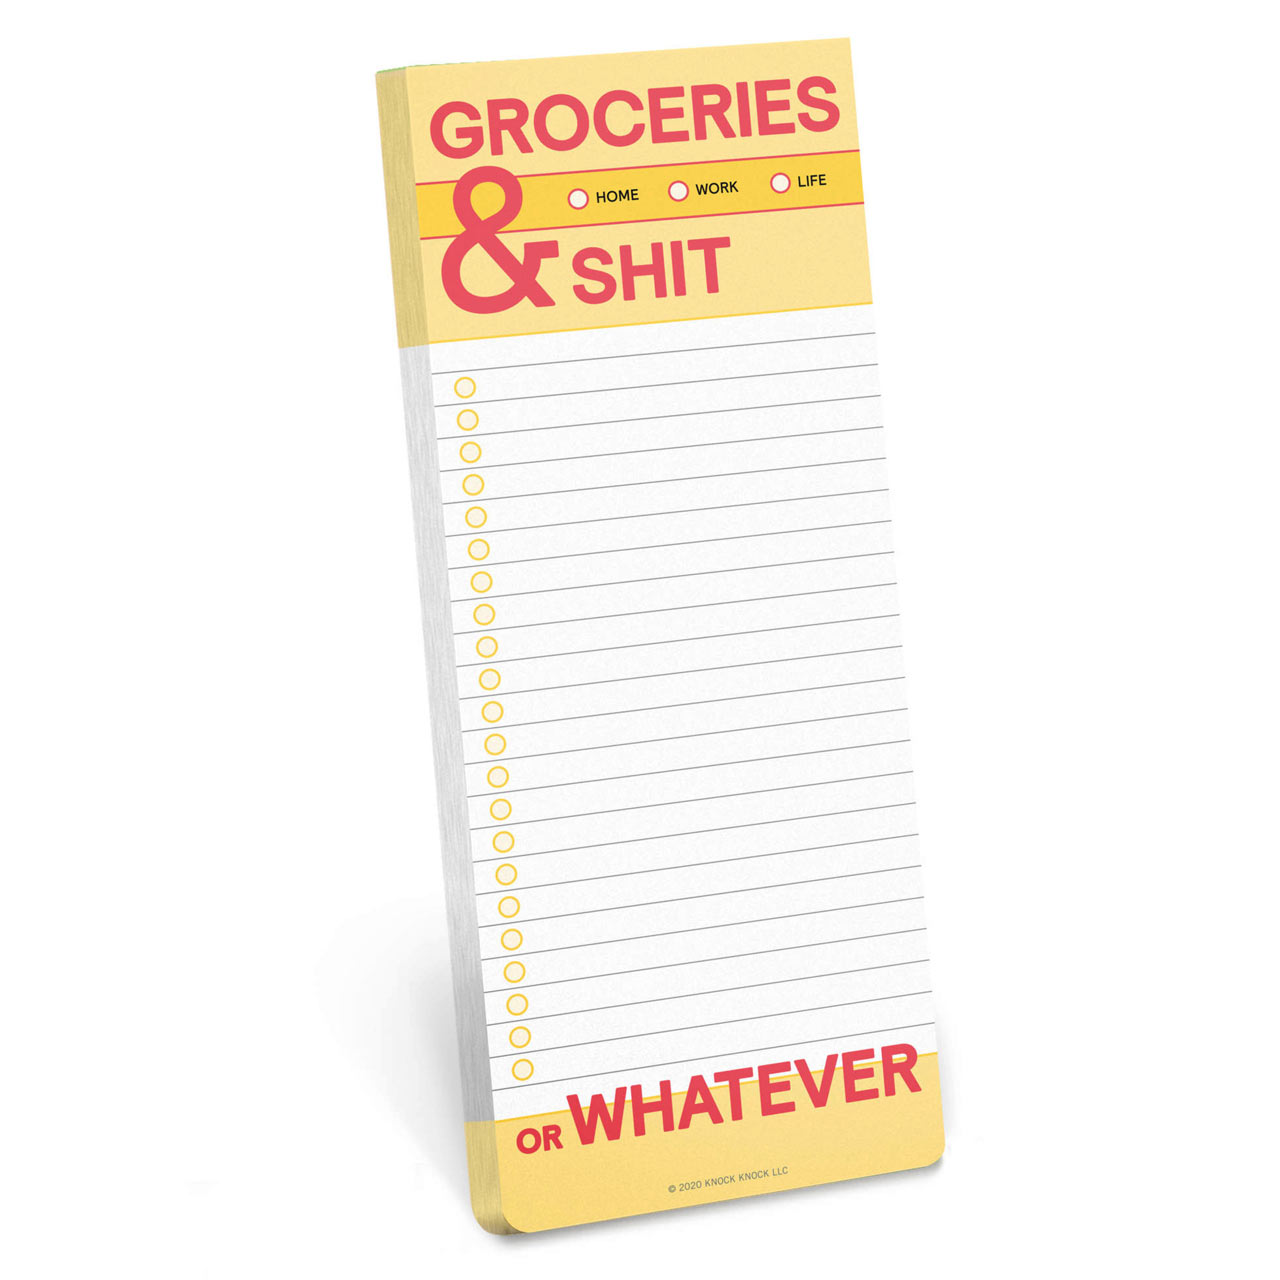 Groceries & Shit - Make a List Note Pad